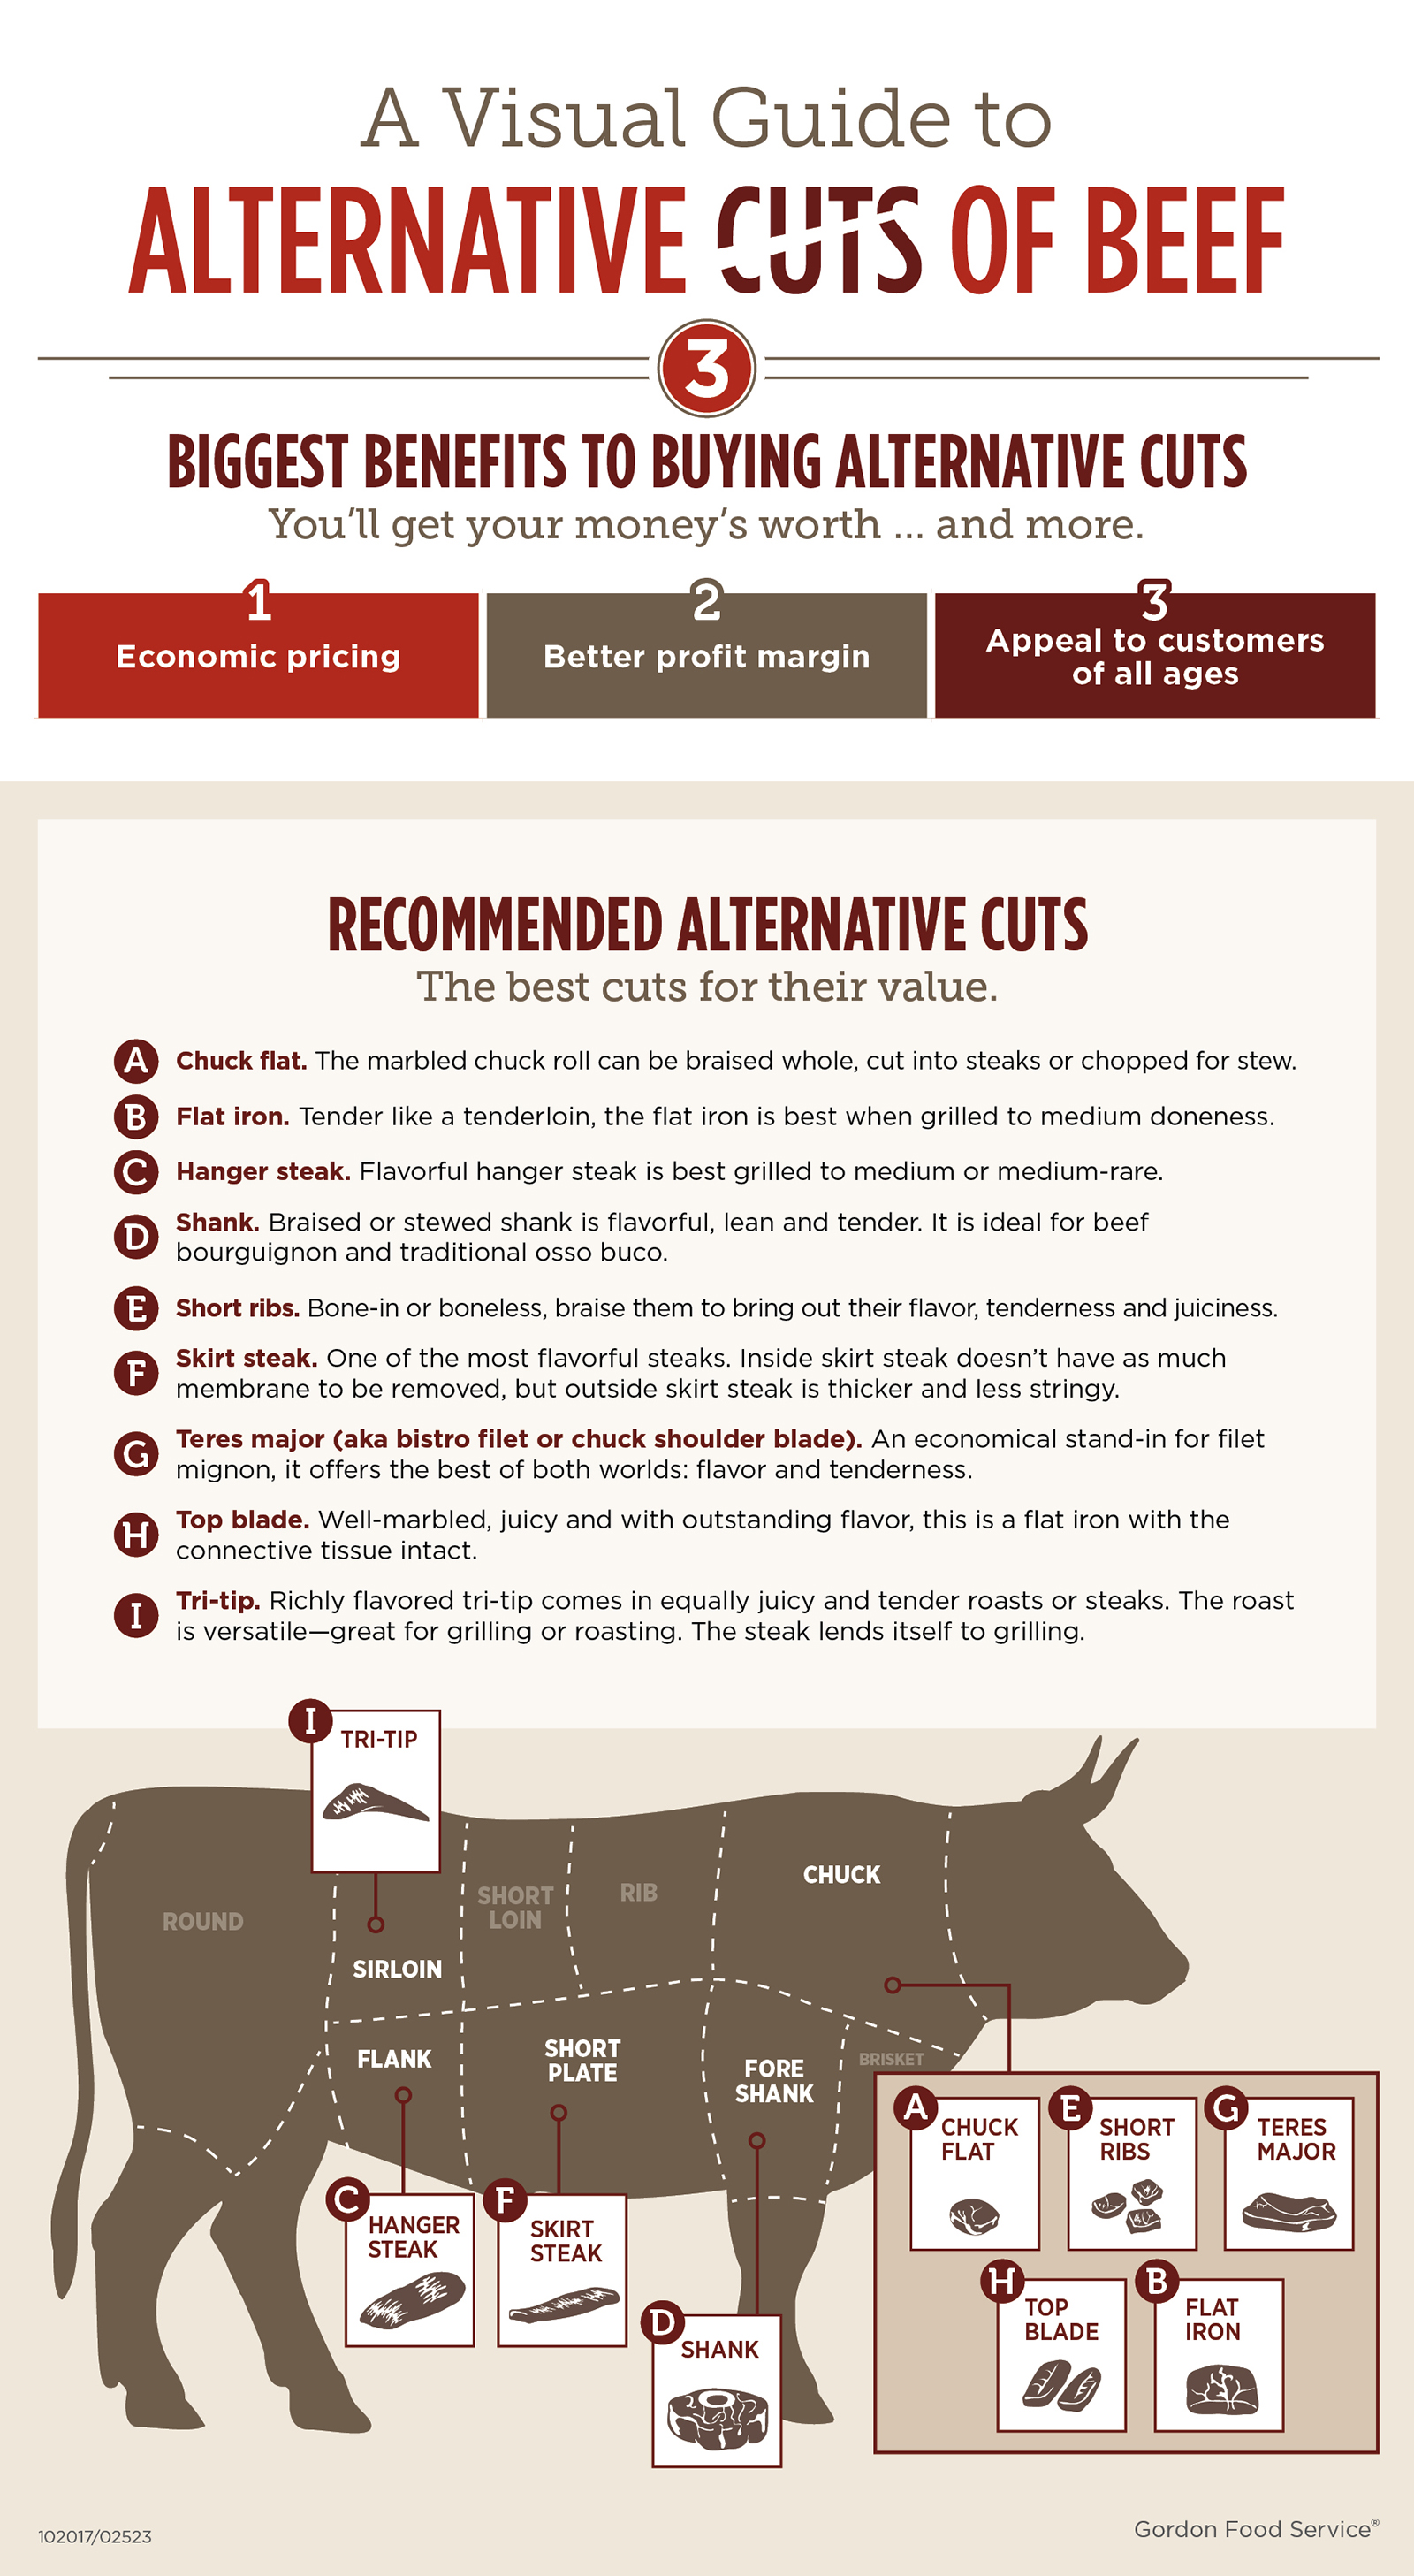 A visual guide to alternative cuts of beef